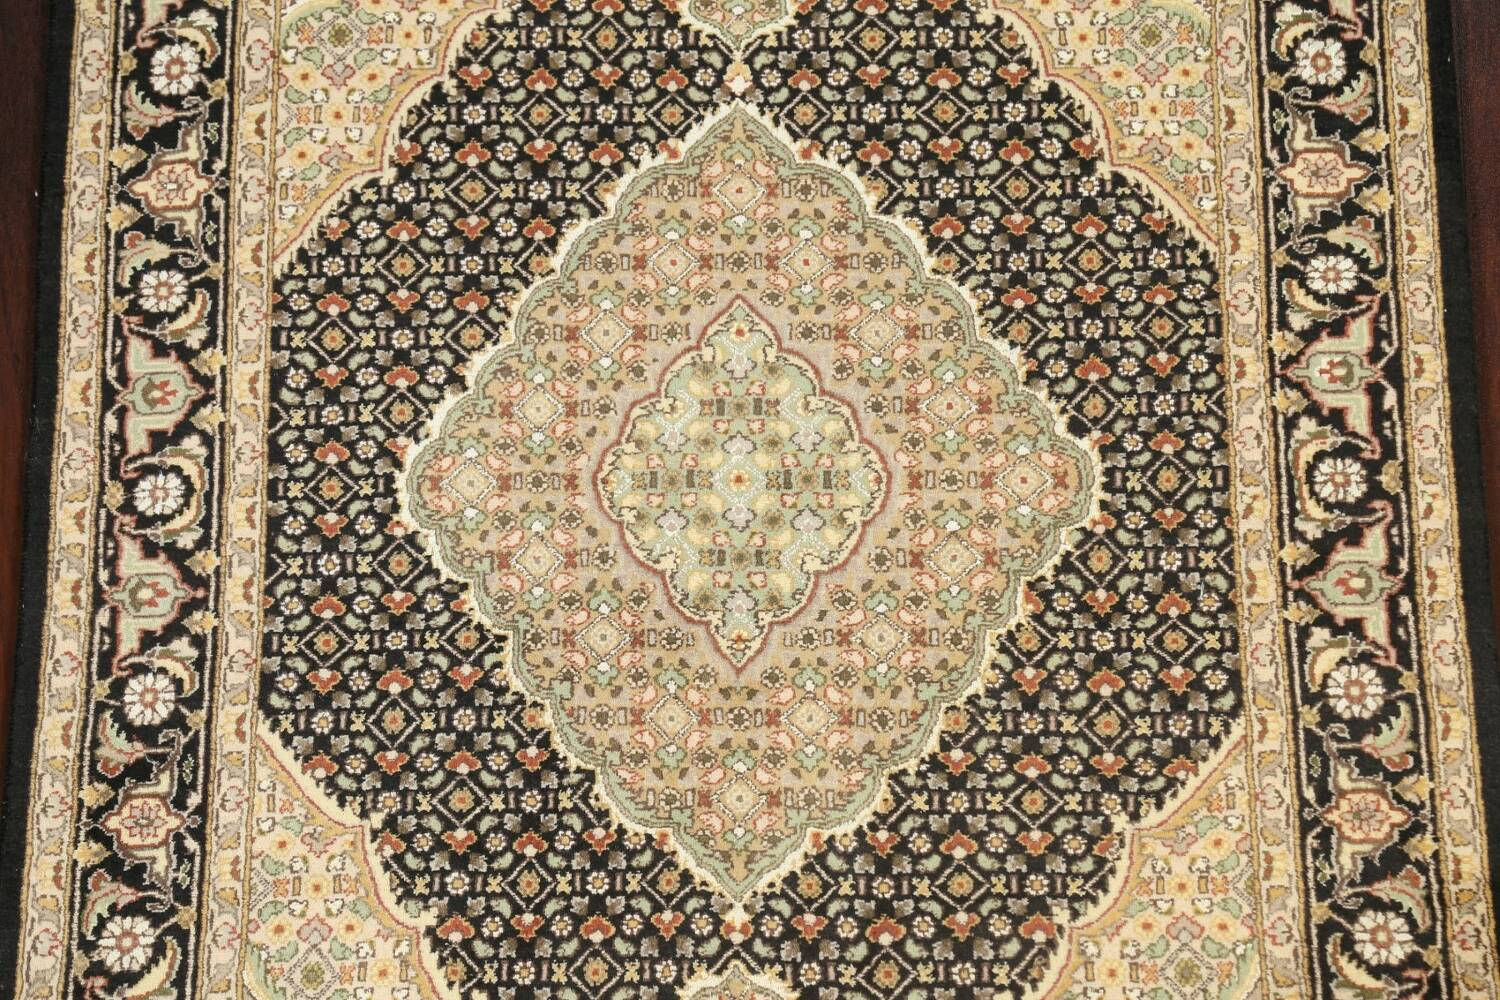 100% Vegetable Dye Tabriz Mahi Oriental Area Rug 4x6 image 4